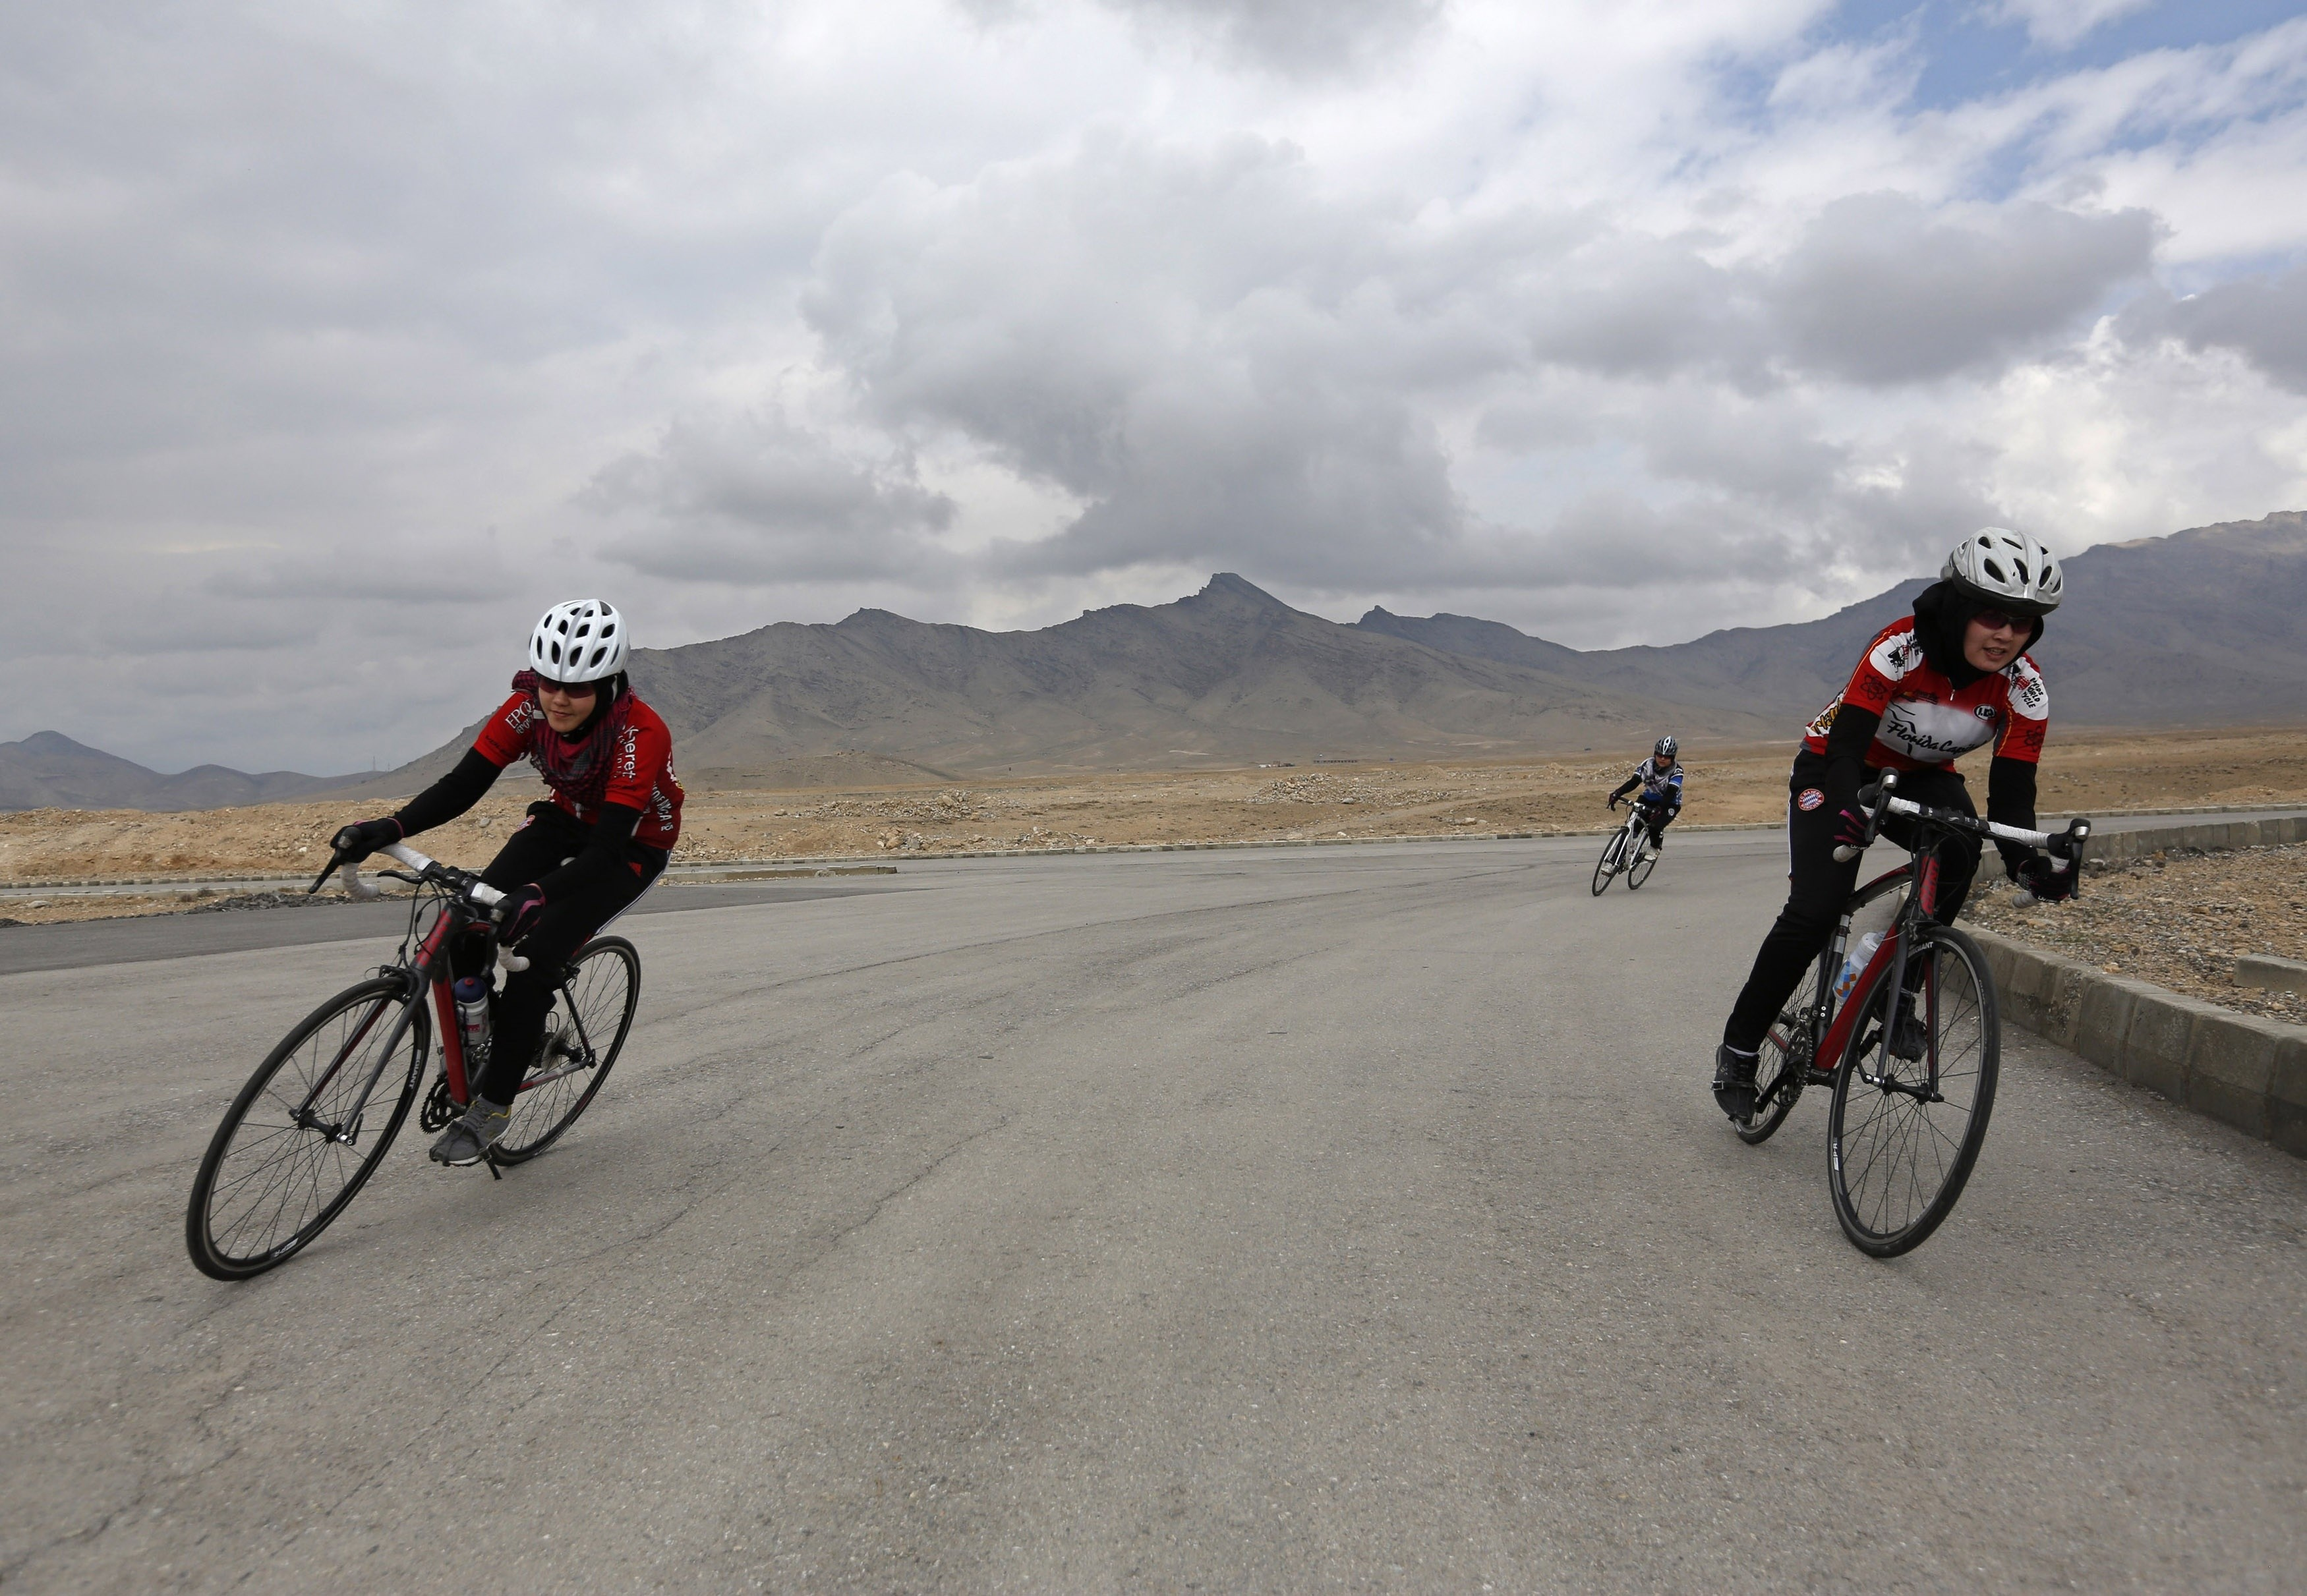 Masooma Alizada (L), and Zahra Alizada (R), member of Afghanistan's Women's National Cycling Team exercise on the outskirts of Kabul February 20, 2015. Afghanistan's Women's National Cycling Team has been breaking new ground for women's sports and pushing the boundaries of what is - and is not - acceptable for young women in the conservative Muslim country. Under the Taliban in the 1990s, women in Afghanistan were excluded from public life, banned from going to school or stepping outside their home without a male family member. Women's rights have made gains since the hardline Islamist group's ouster in 2001, but observers worry that progress is at risk as gender-based violence persists and women remain under-represented in politics. REUTERS/Mohammad Ismail (AFGHANISTAN - Tags: SPORT SOCIETY CYCLING)PICTURE 16 OF 24 FOR WIDER IMAGE STORY 'AFGHANISTAN'S WOMEN RACERS'SEARCH 'AFGHANISTAN CYCLING' FOR ALL IMAGESFOR BEST QUALITY IMAGE ALSO SEE: GF10000144534 - LM2EB3A15ZJ01